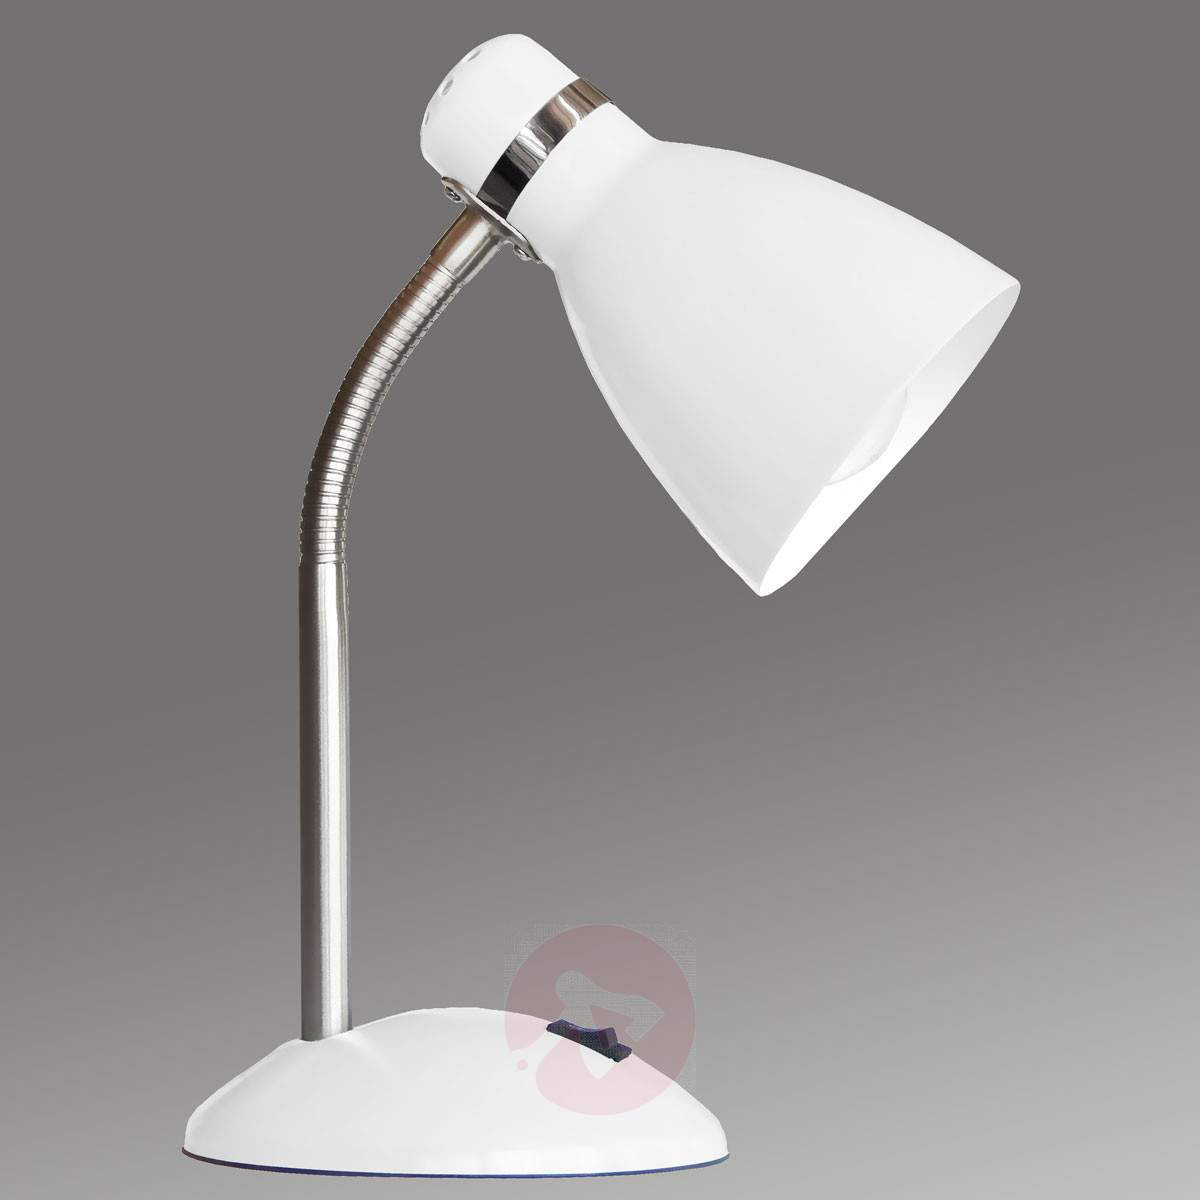 Best ideas about White Desk Lamp . Save or Pin White desk lamp Studio Now.